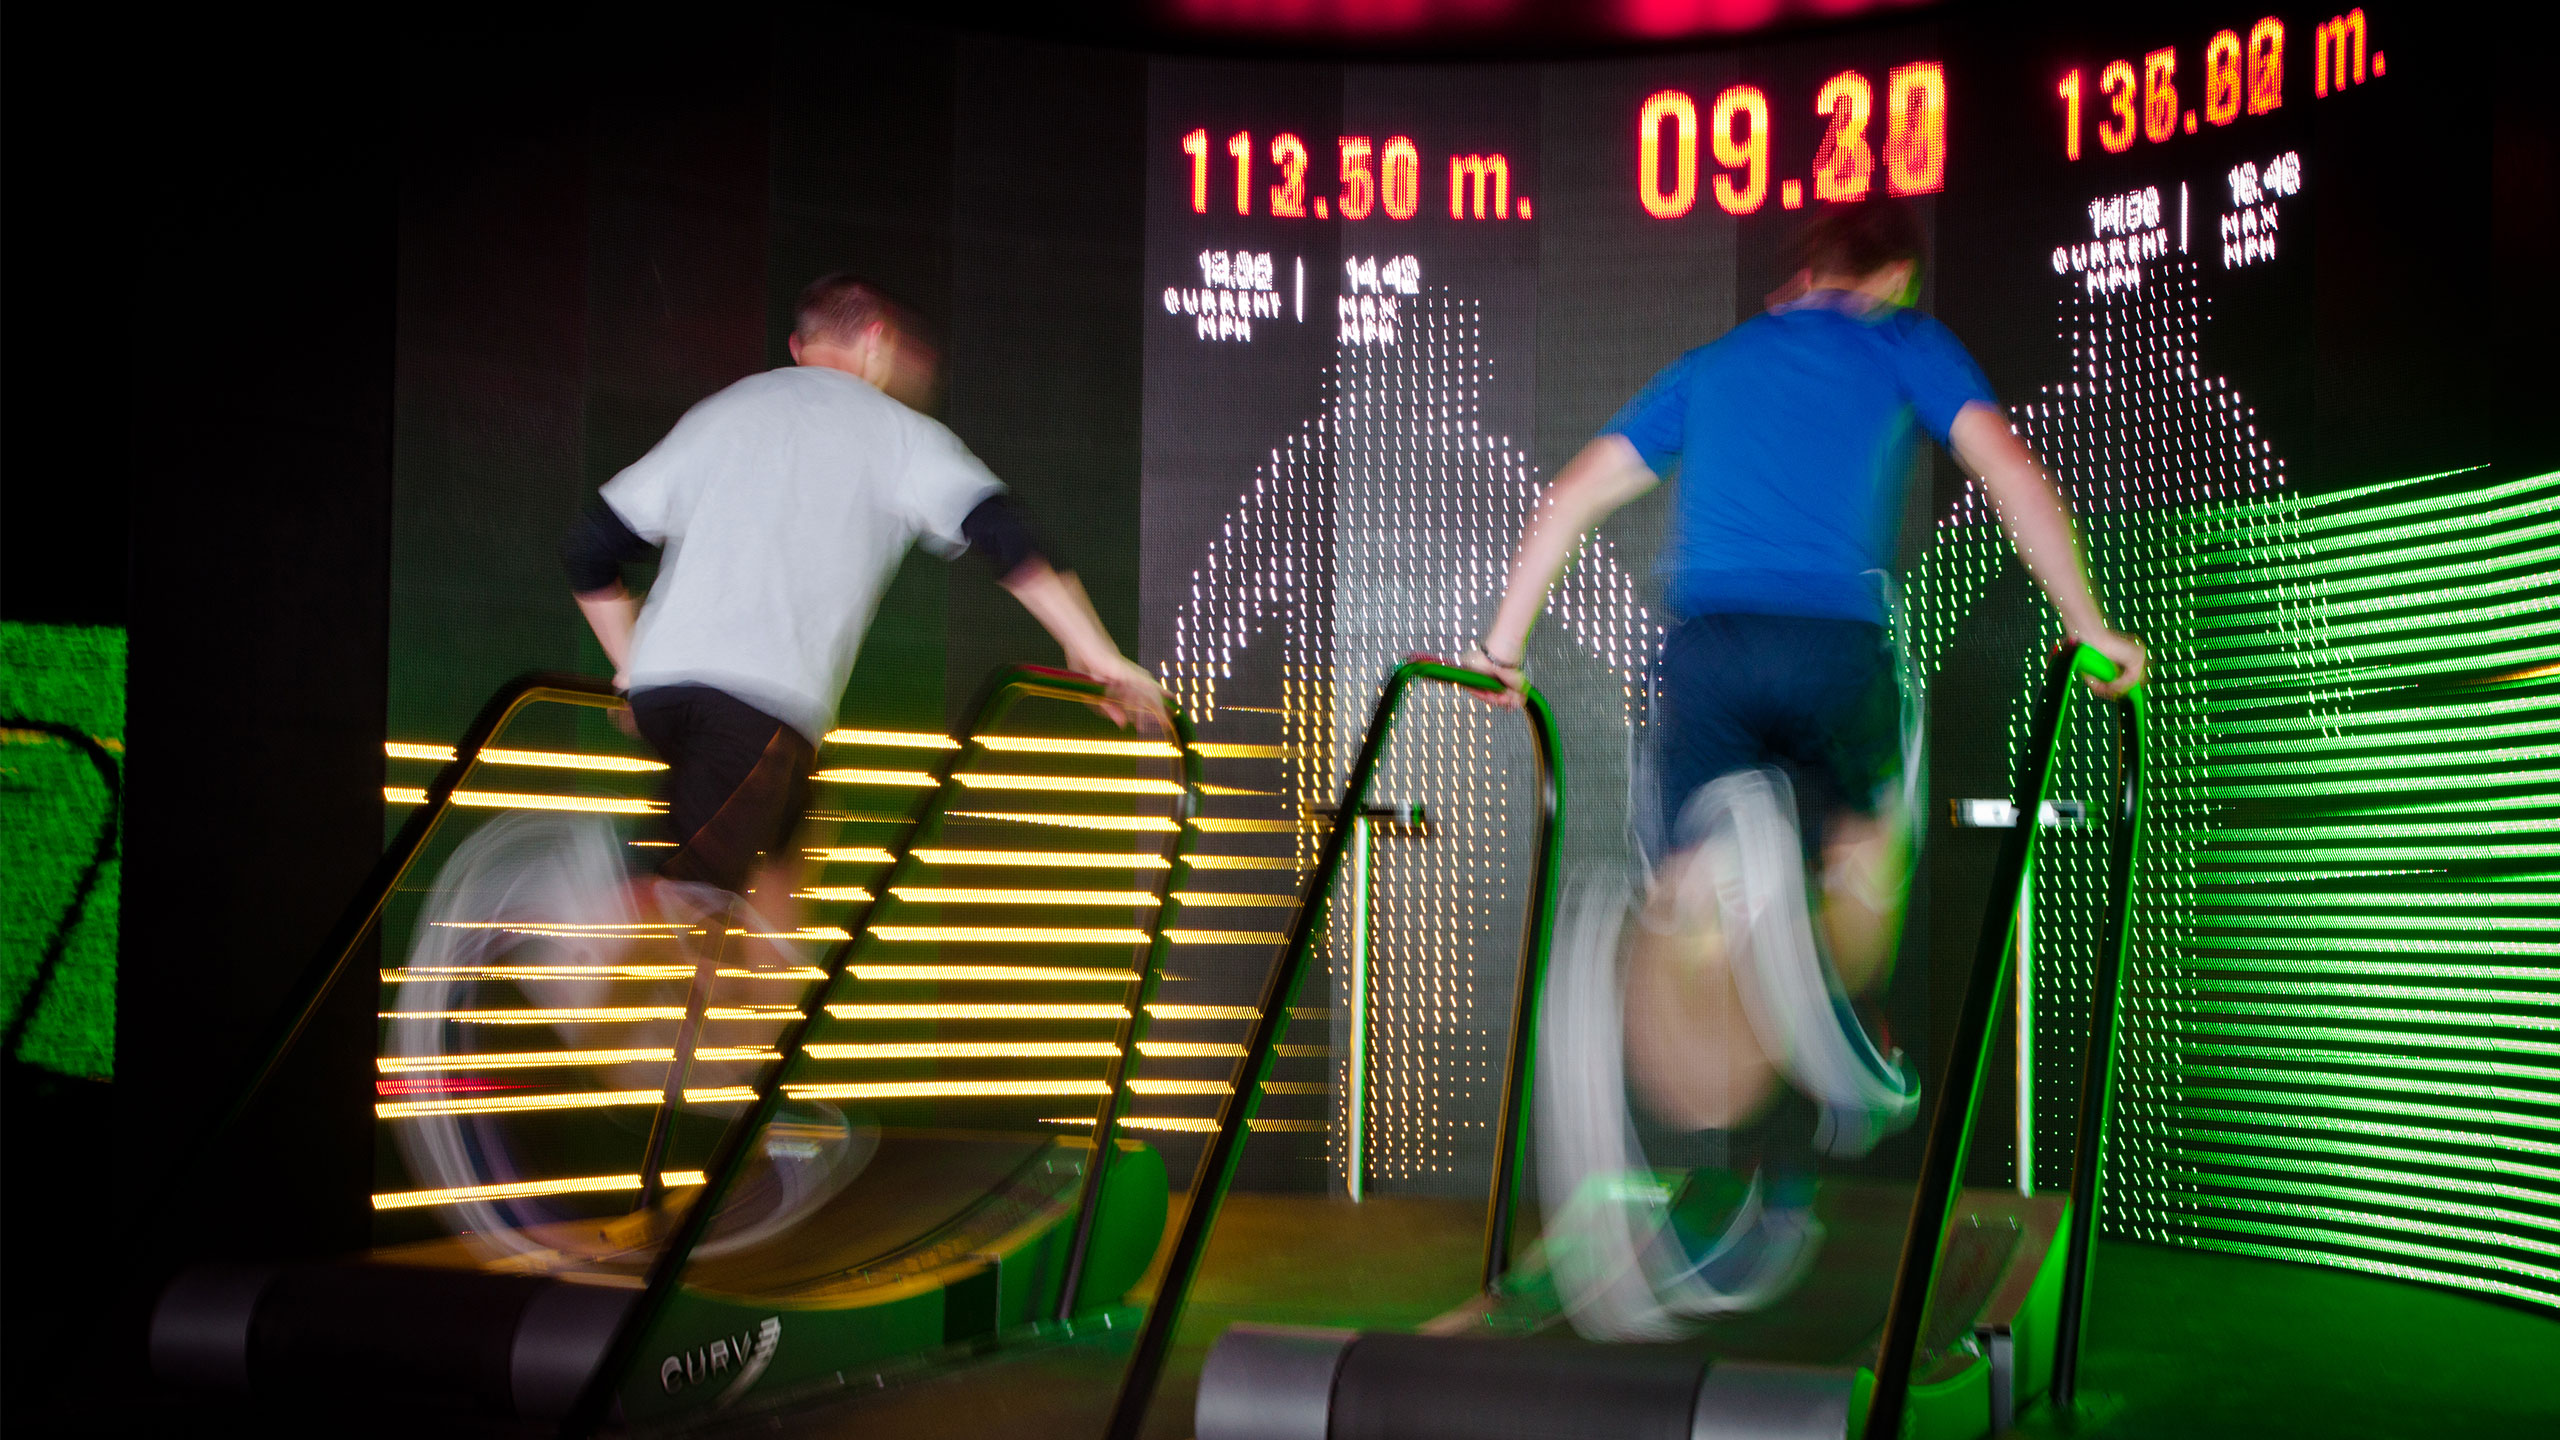 Treadmill race